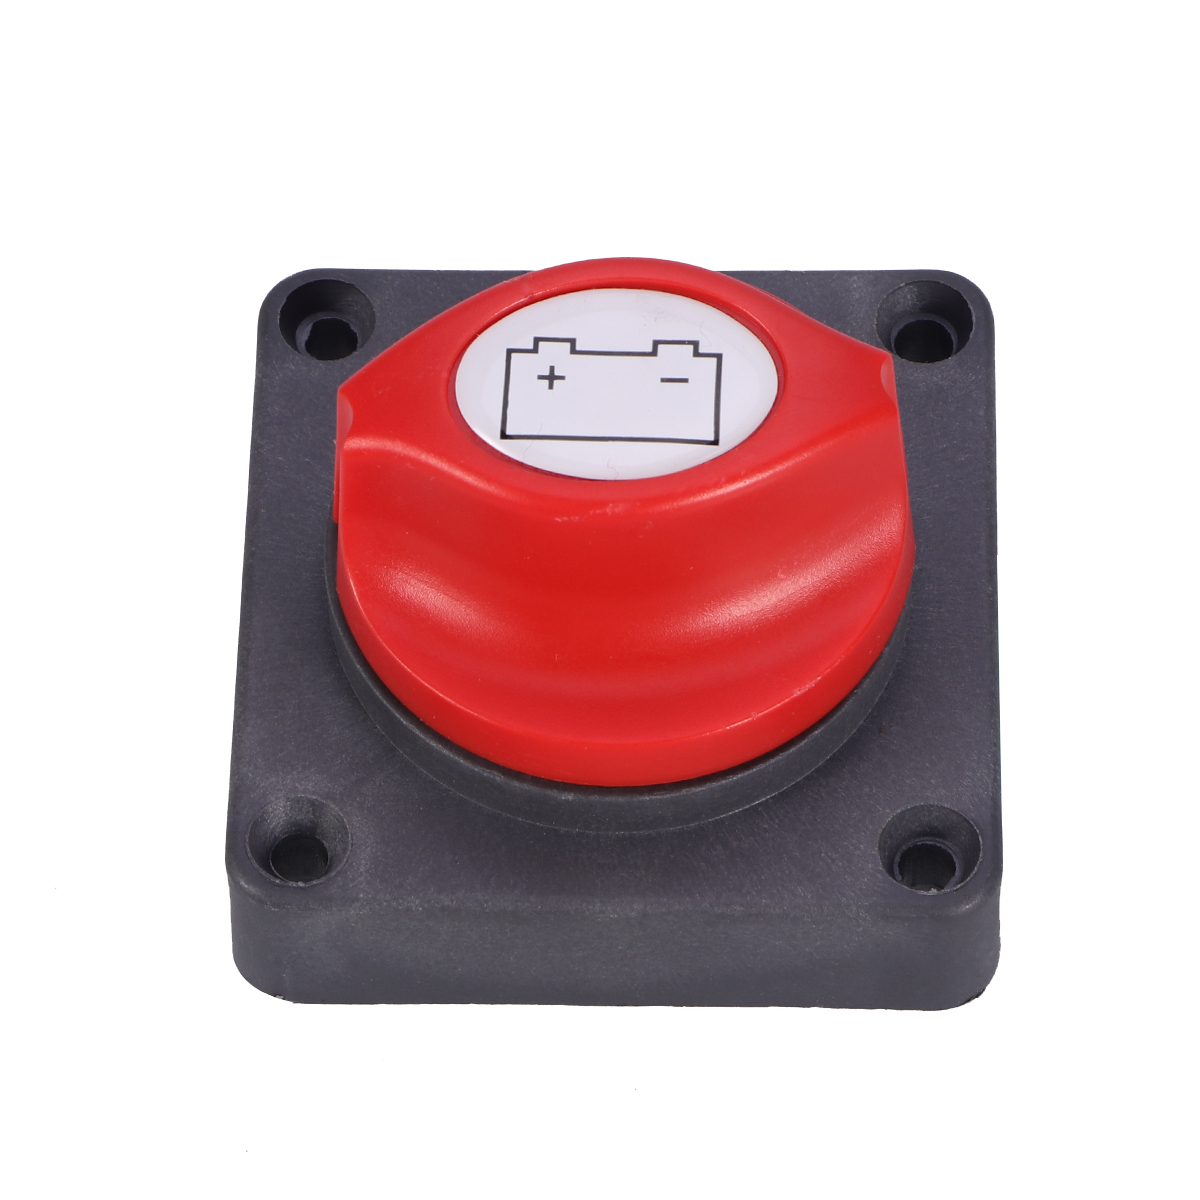 Universal Battery Isolator Master Cutoff Cut Off Power Kill Switch 12V/24V Waterproof Cover for Auto Car Truck Boat